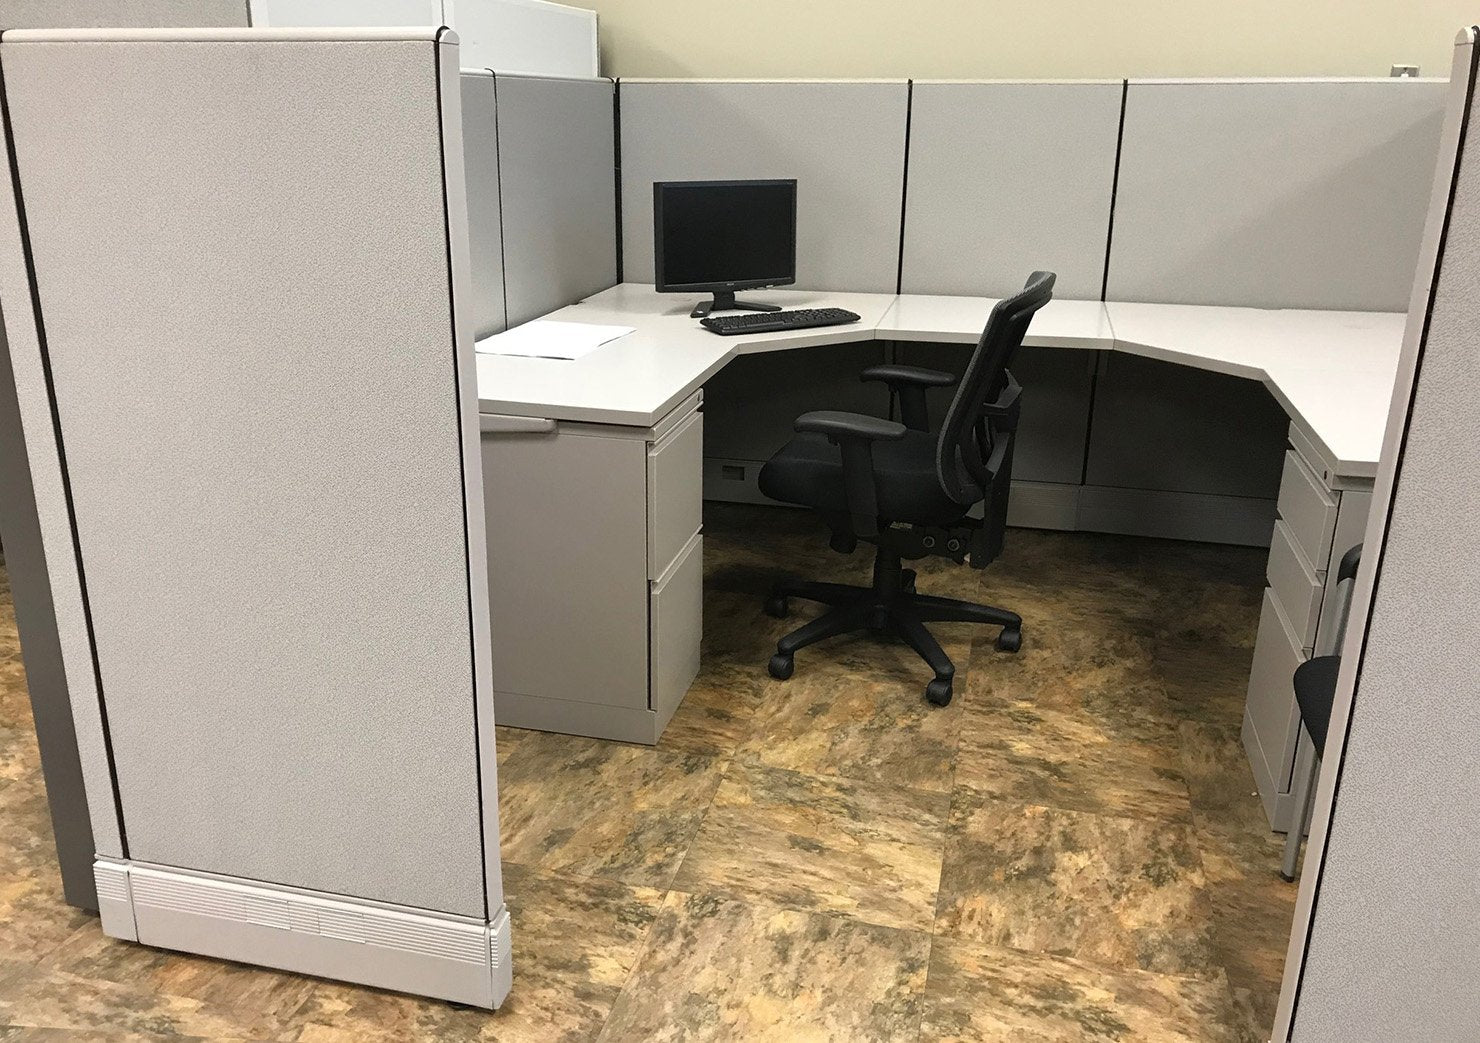 Herman Miller AO3 Cubicle for sale in Minnesota